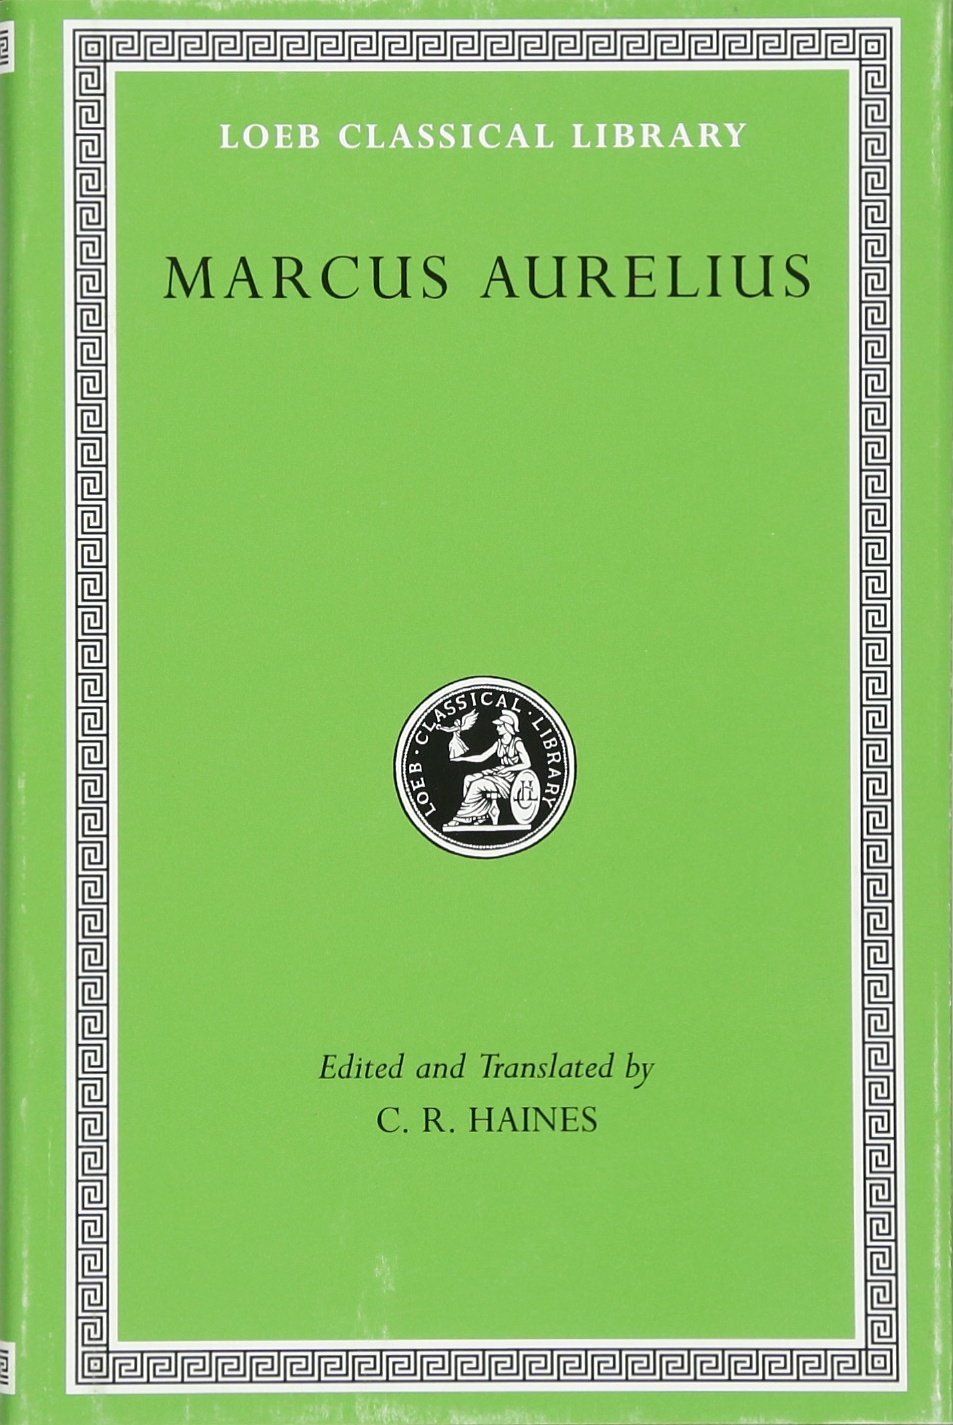 Works (Loeb Classical Library 58)